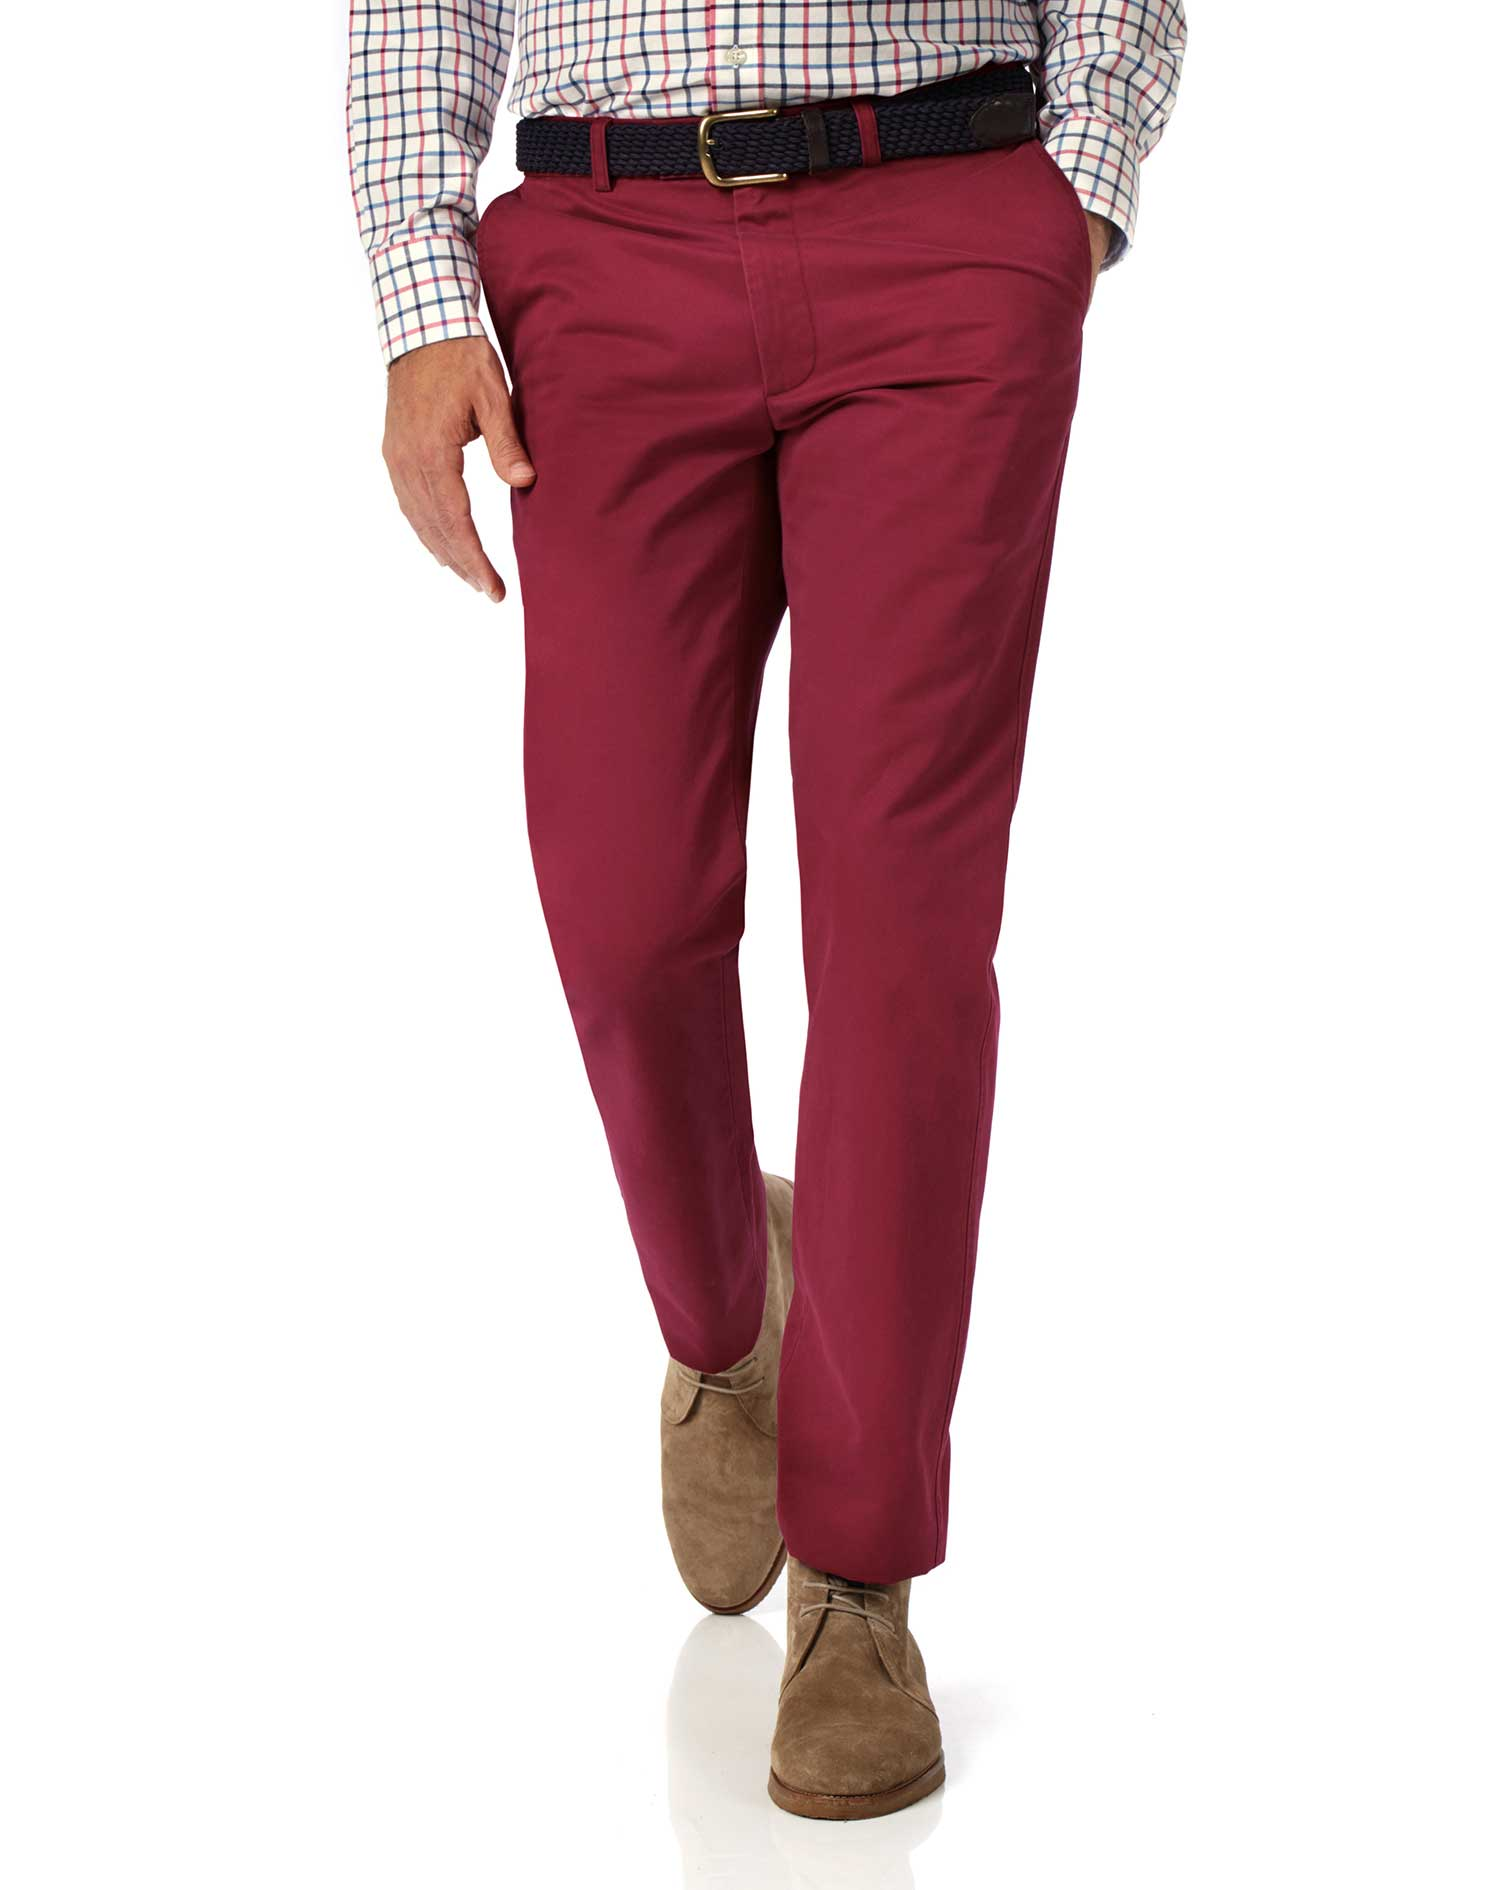 Red Slim Fit Flat Front Washed Cotton Chino Trousers Size W38 L32 by Charles Tyrwhitt